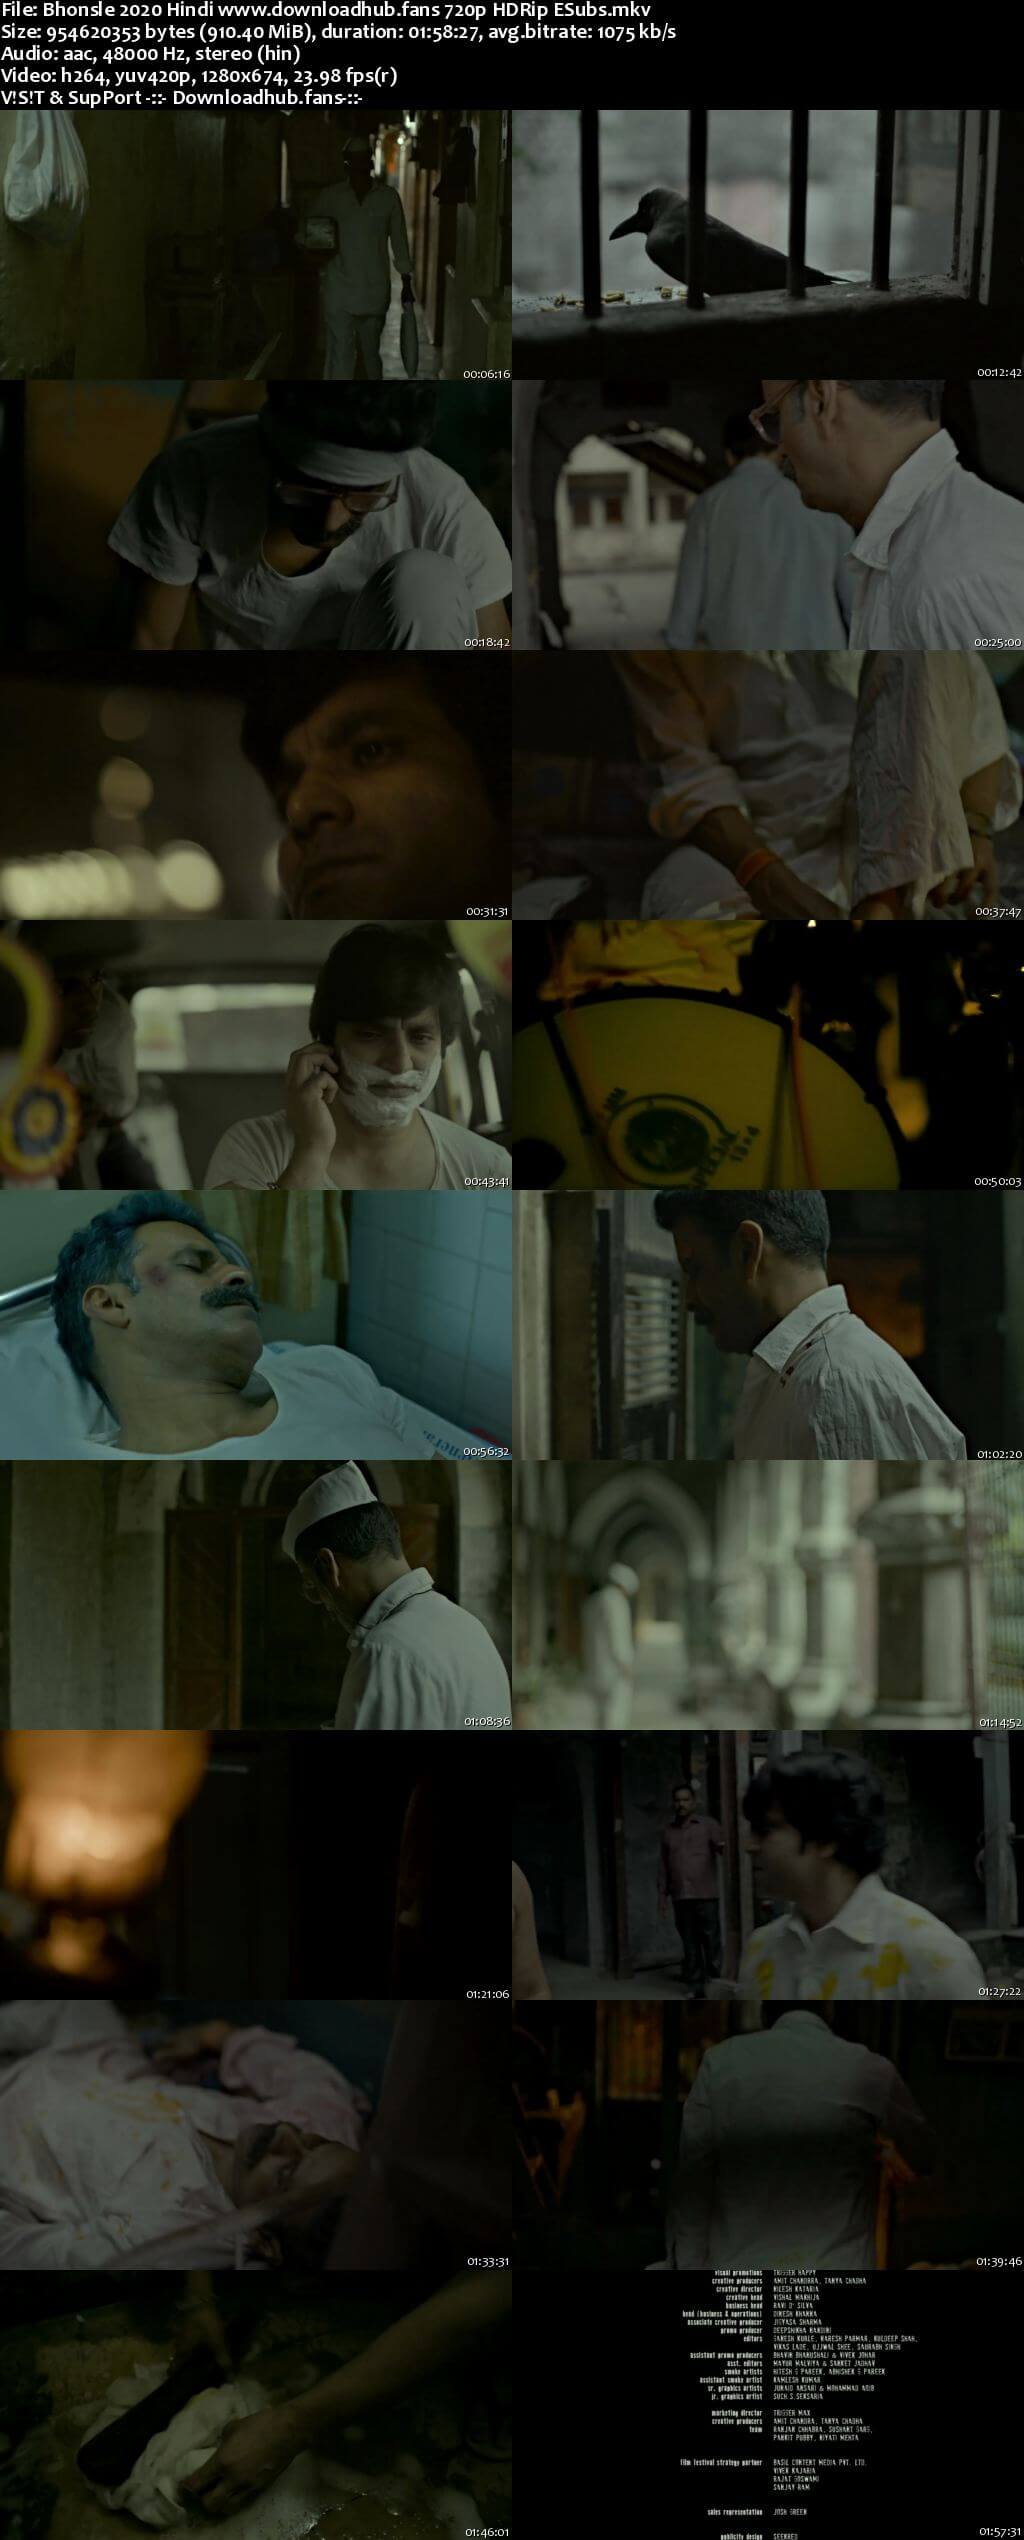 Bhonsle 2020 Hindi 720p HDRip ESubs